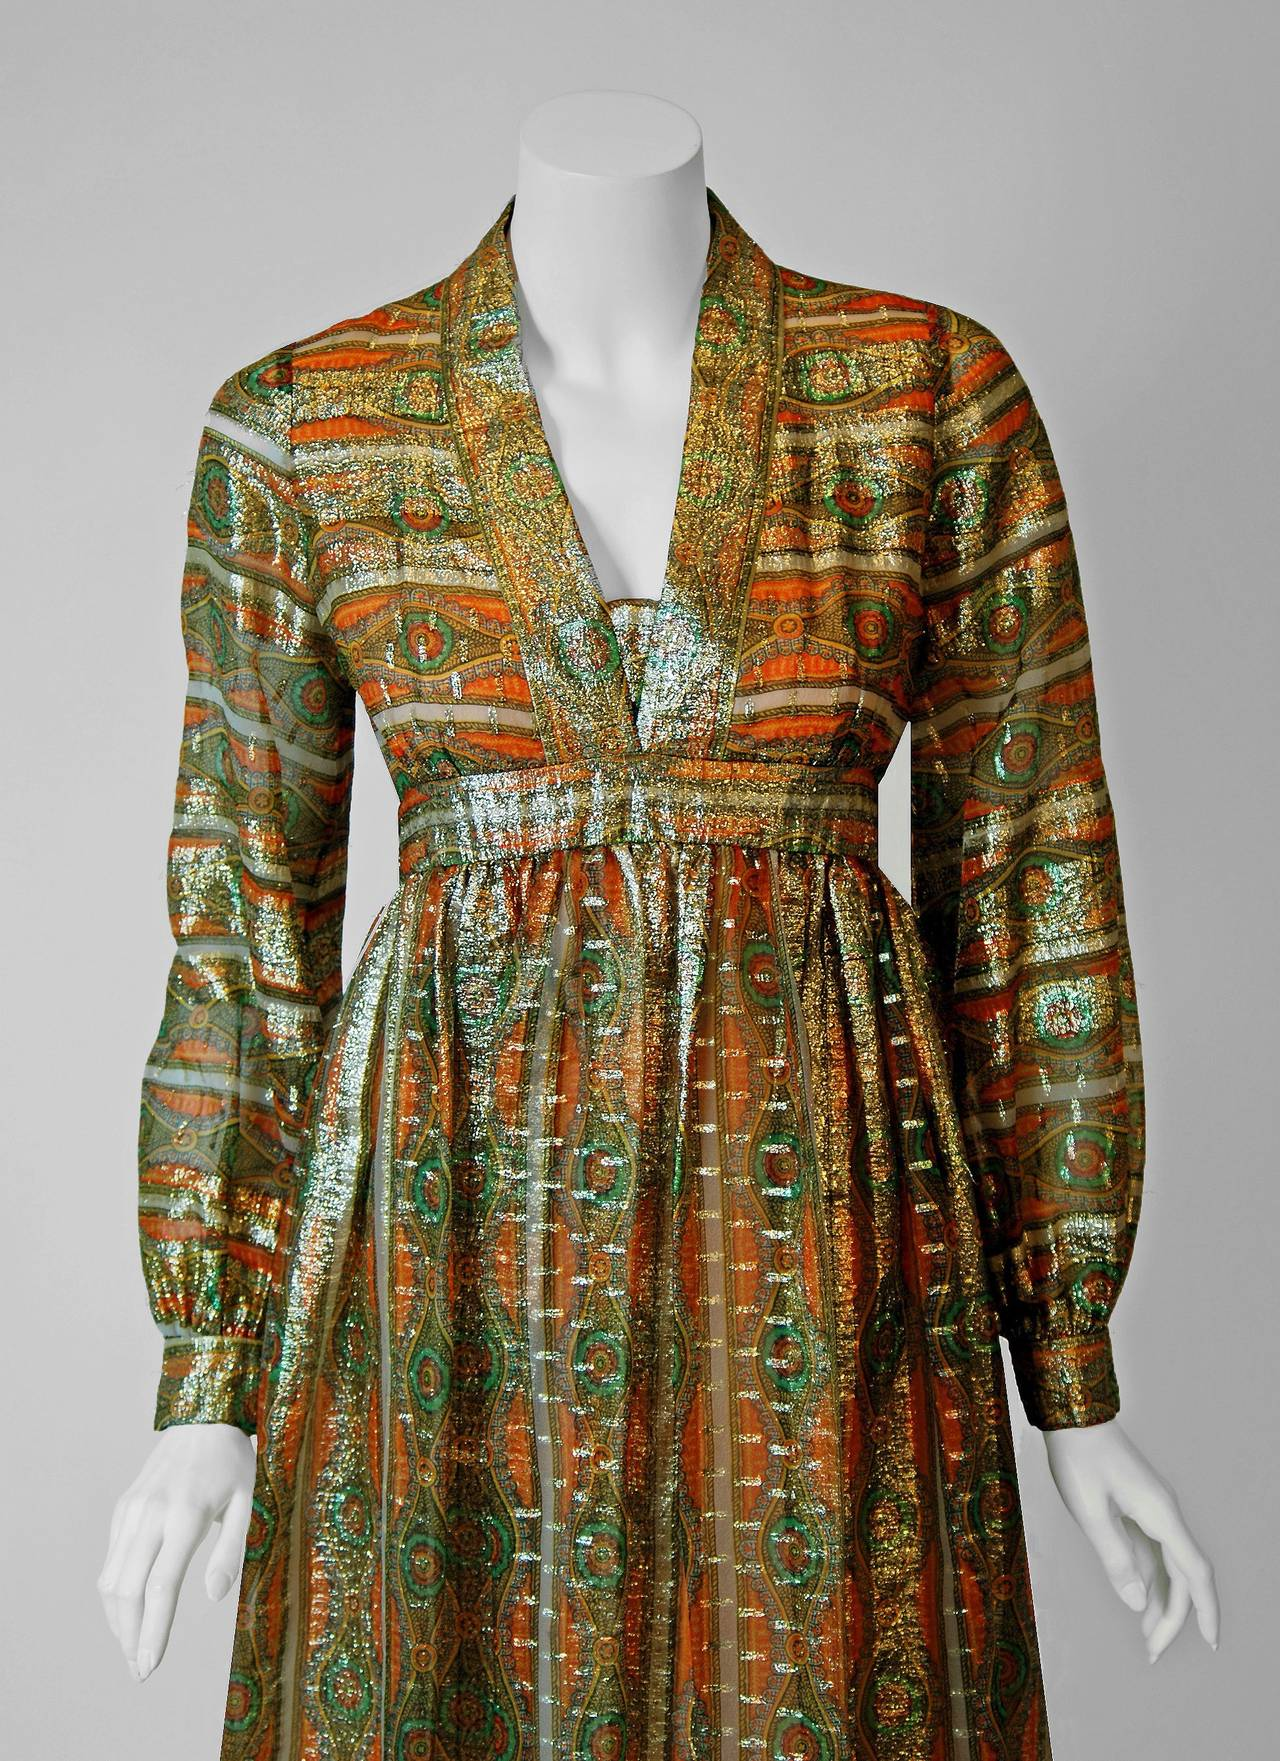 Gorgeous 1970's Indian metallic art-nouveau inspired print silk dress from the high-end Houston boutique, Esther Wolf. The luxurious fabric is lightweight and effortless to wear. The fabric used for this garment is so sensational, it shimmers with